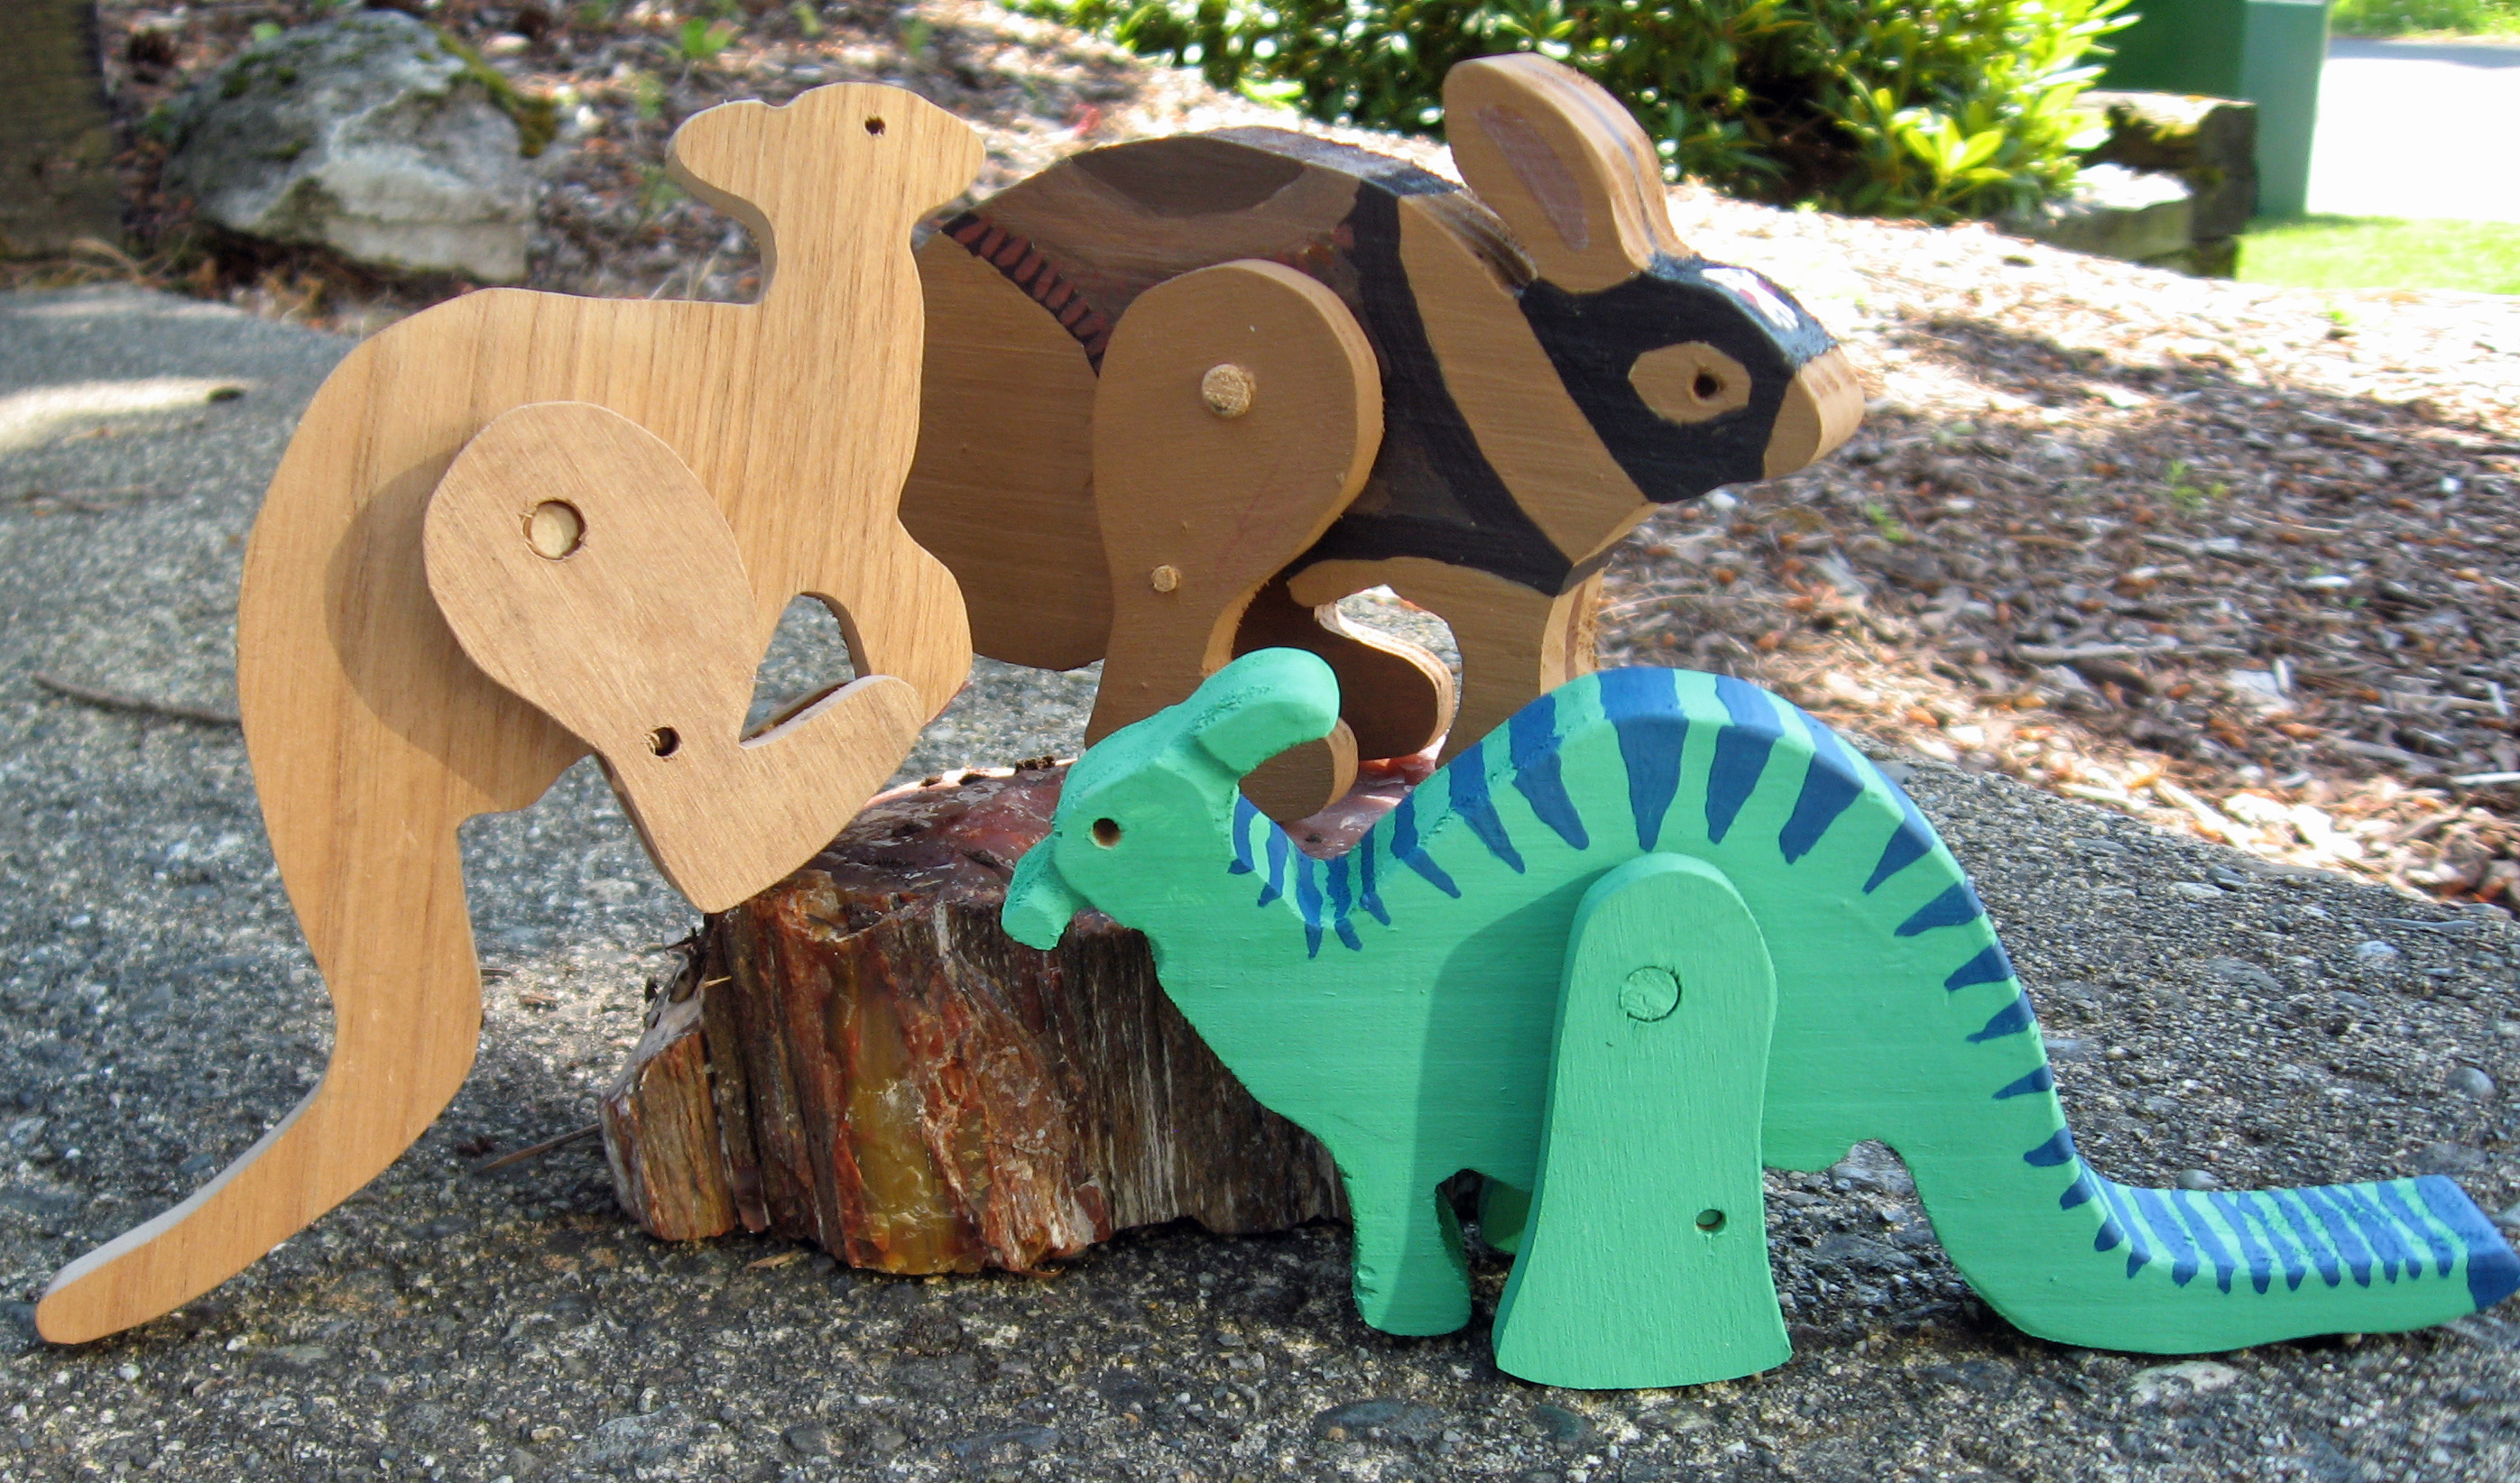 designing hopping animal and comic book character toys: 4